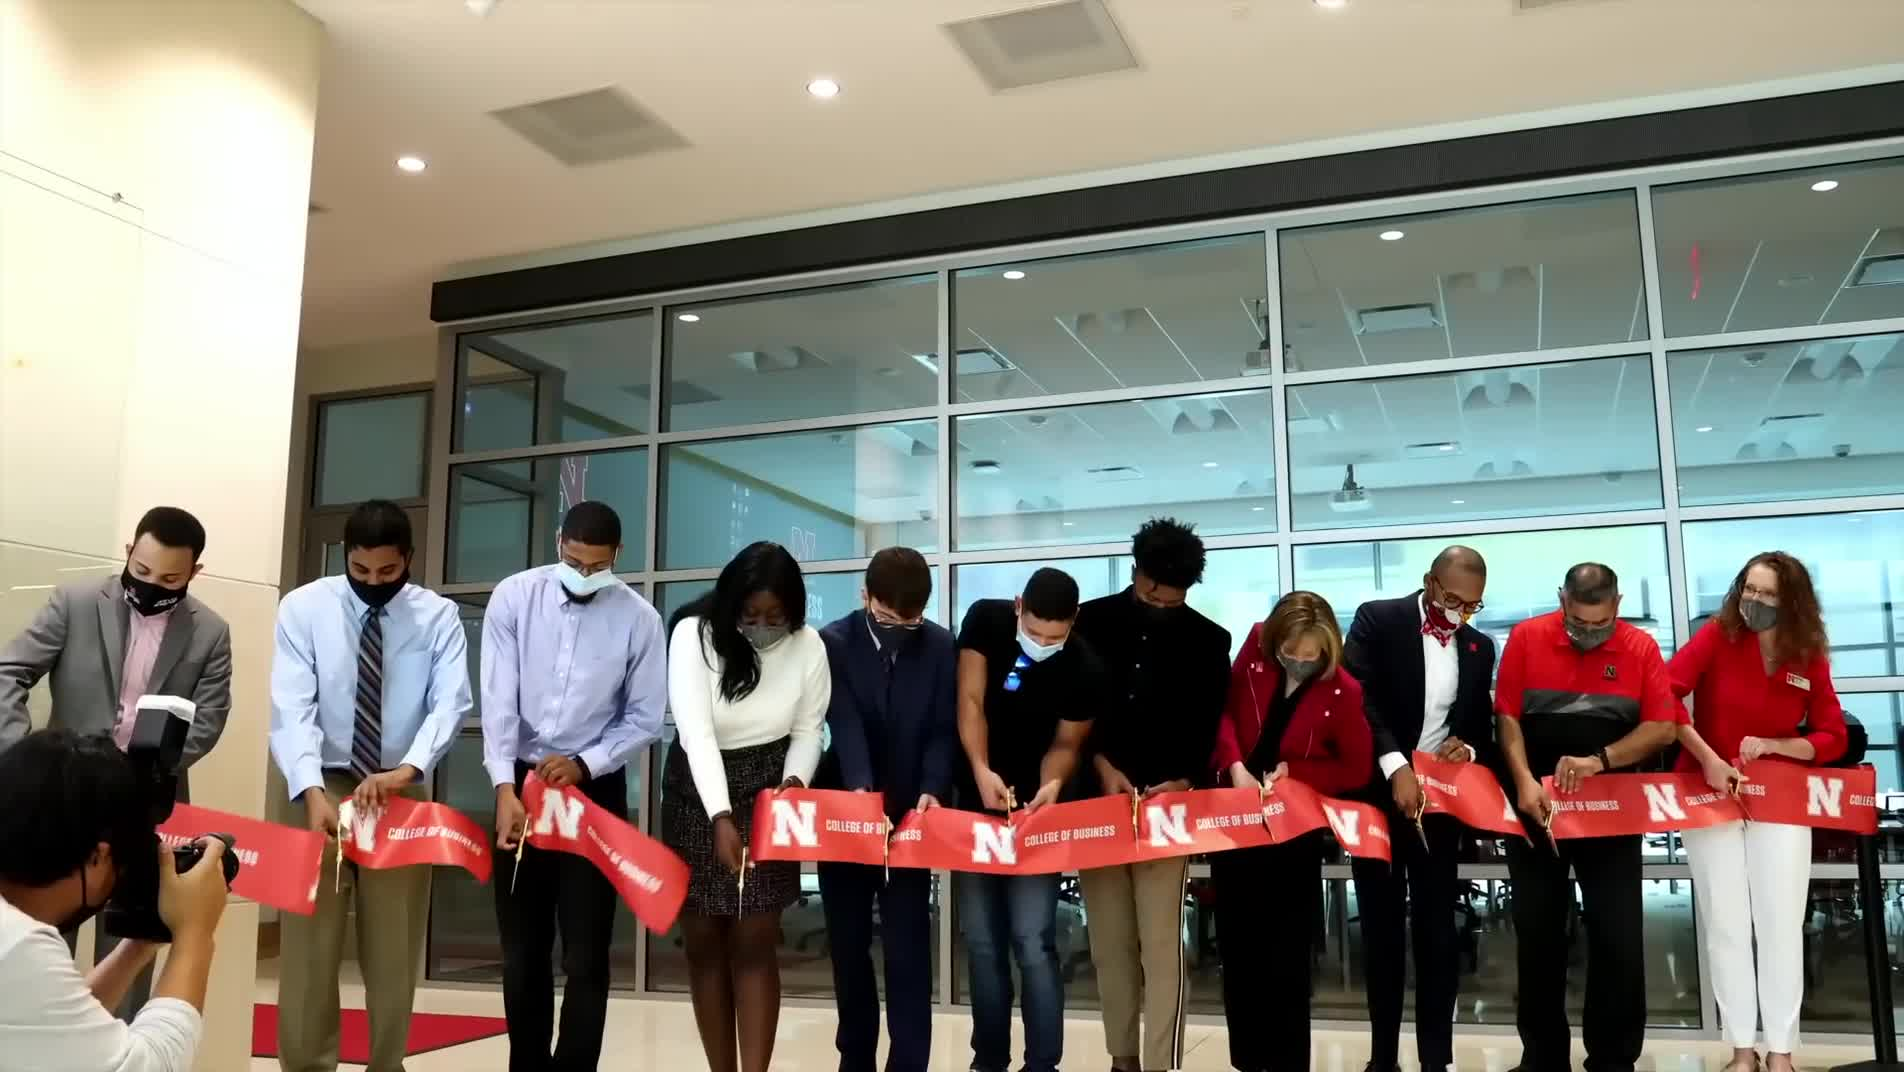 Diversity and Inclusion Gathering Space Opens at College of Business